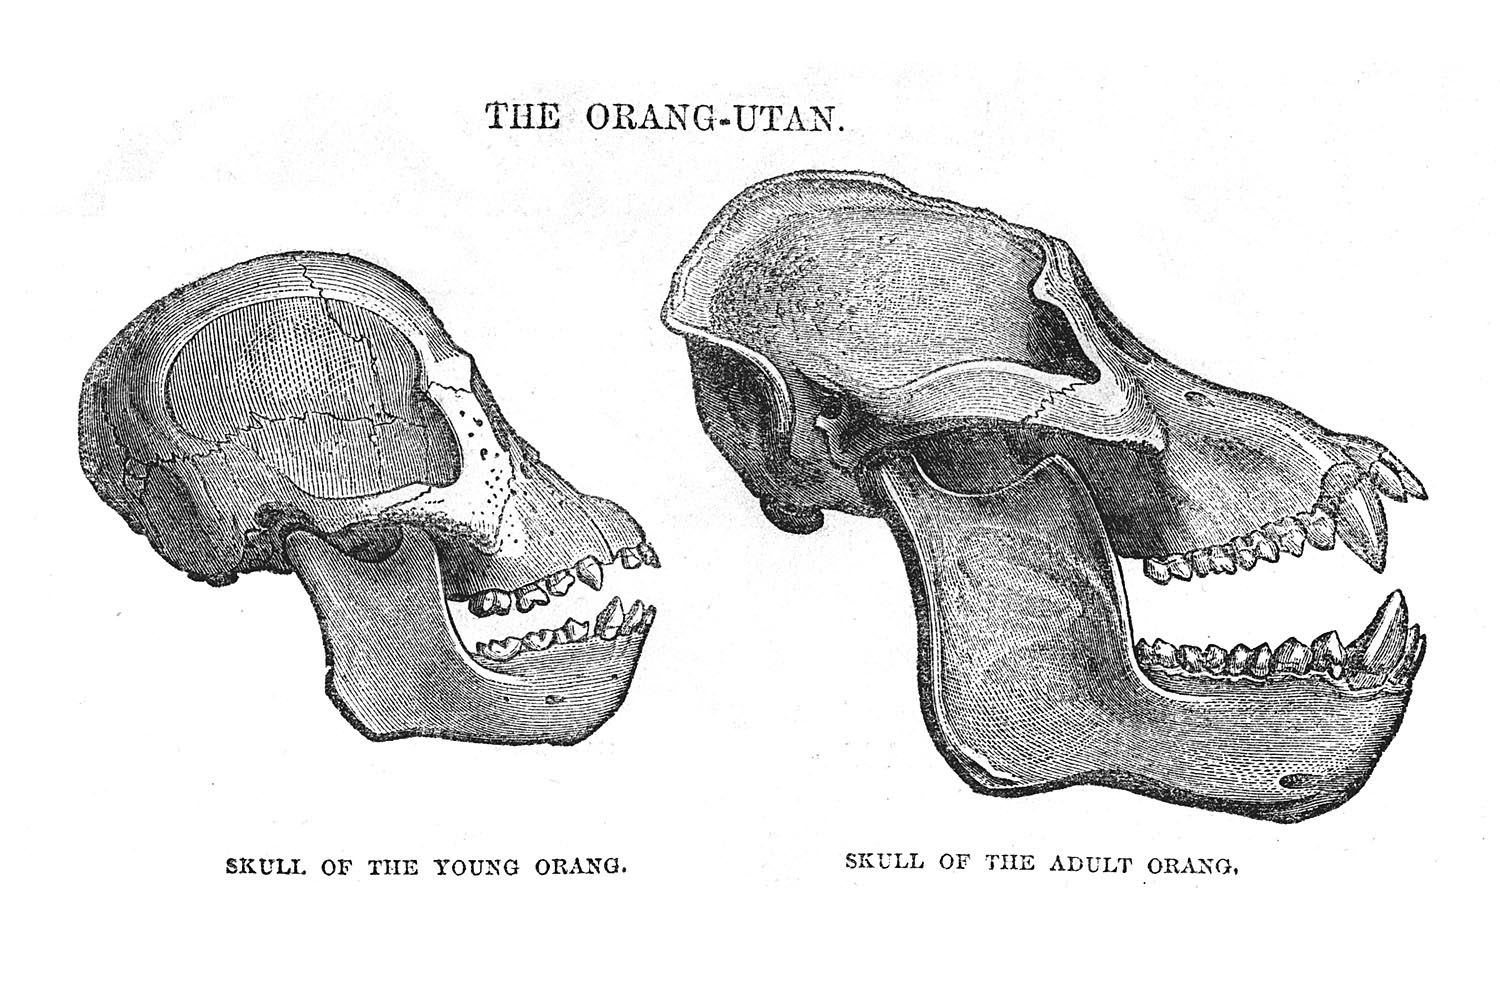 medium resolution of the skeleton of an orangutan primates mammals animal skulls animal anatomy